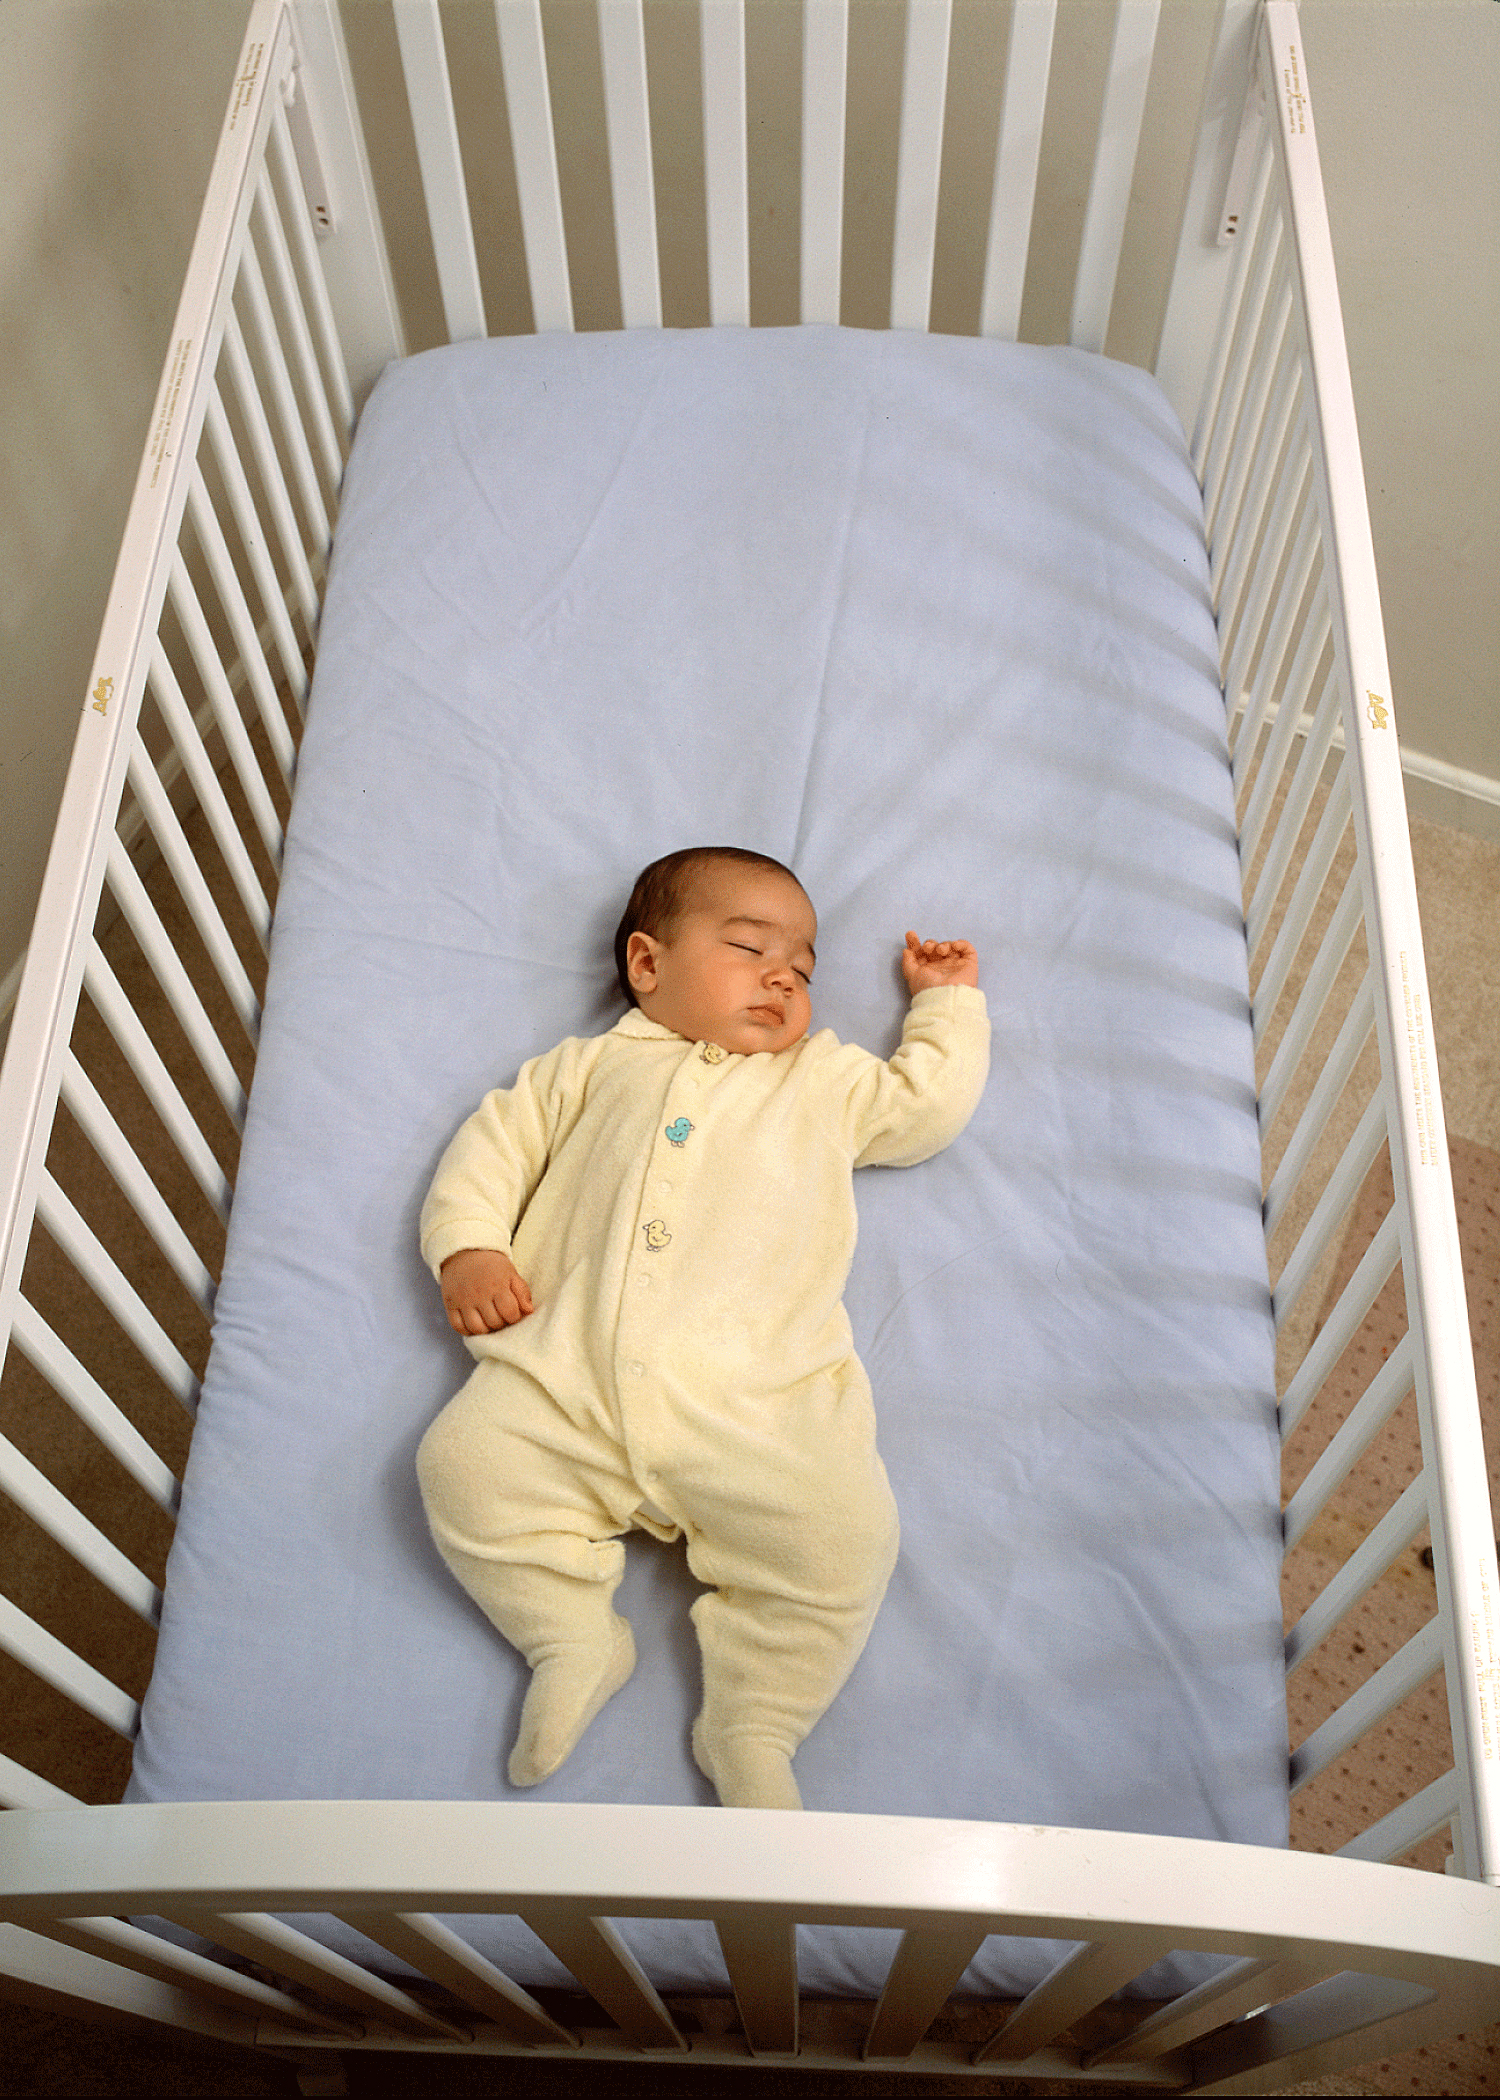 Download 1500x2100 resolution PlusPng.com  - Baby Sleeping In Crib PNG